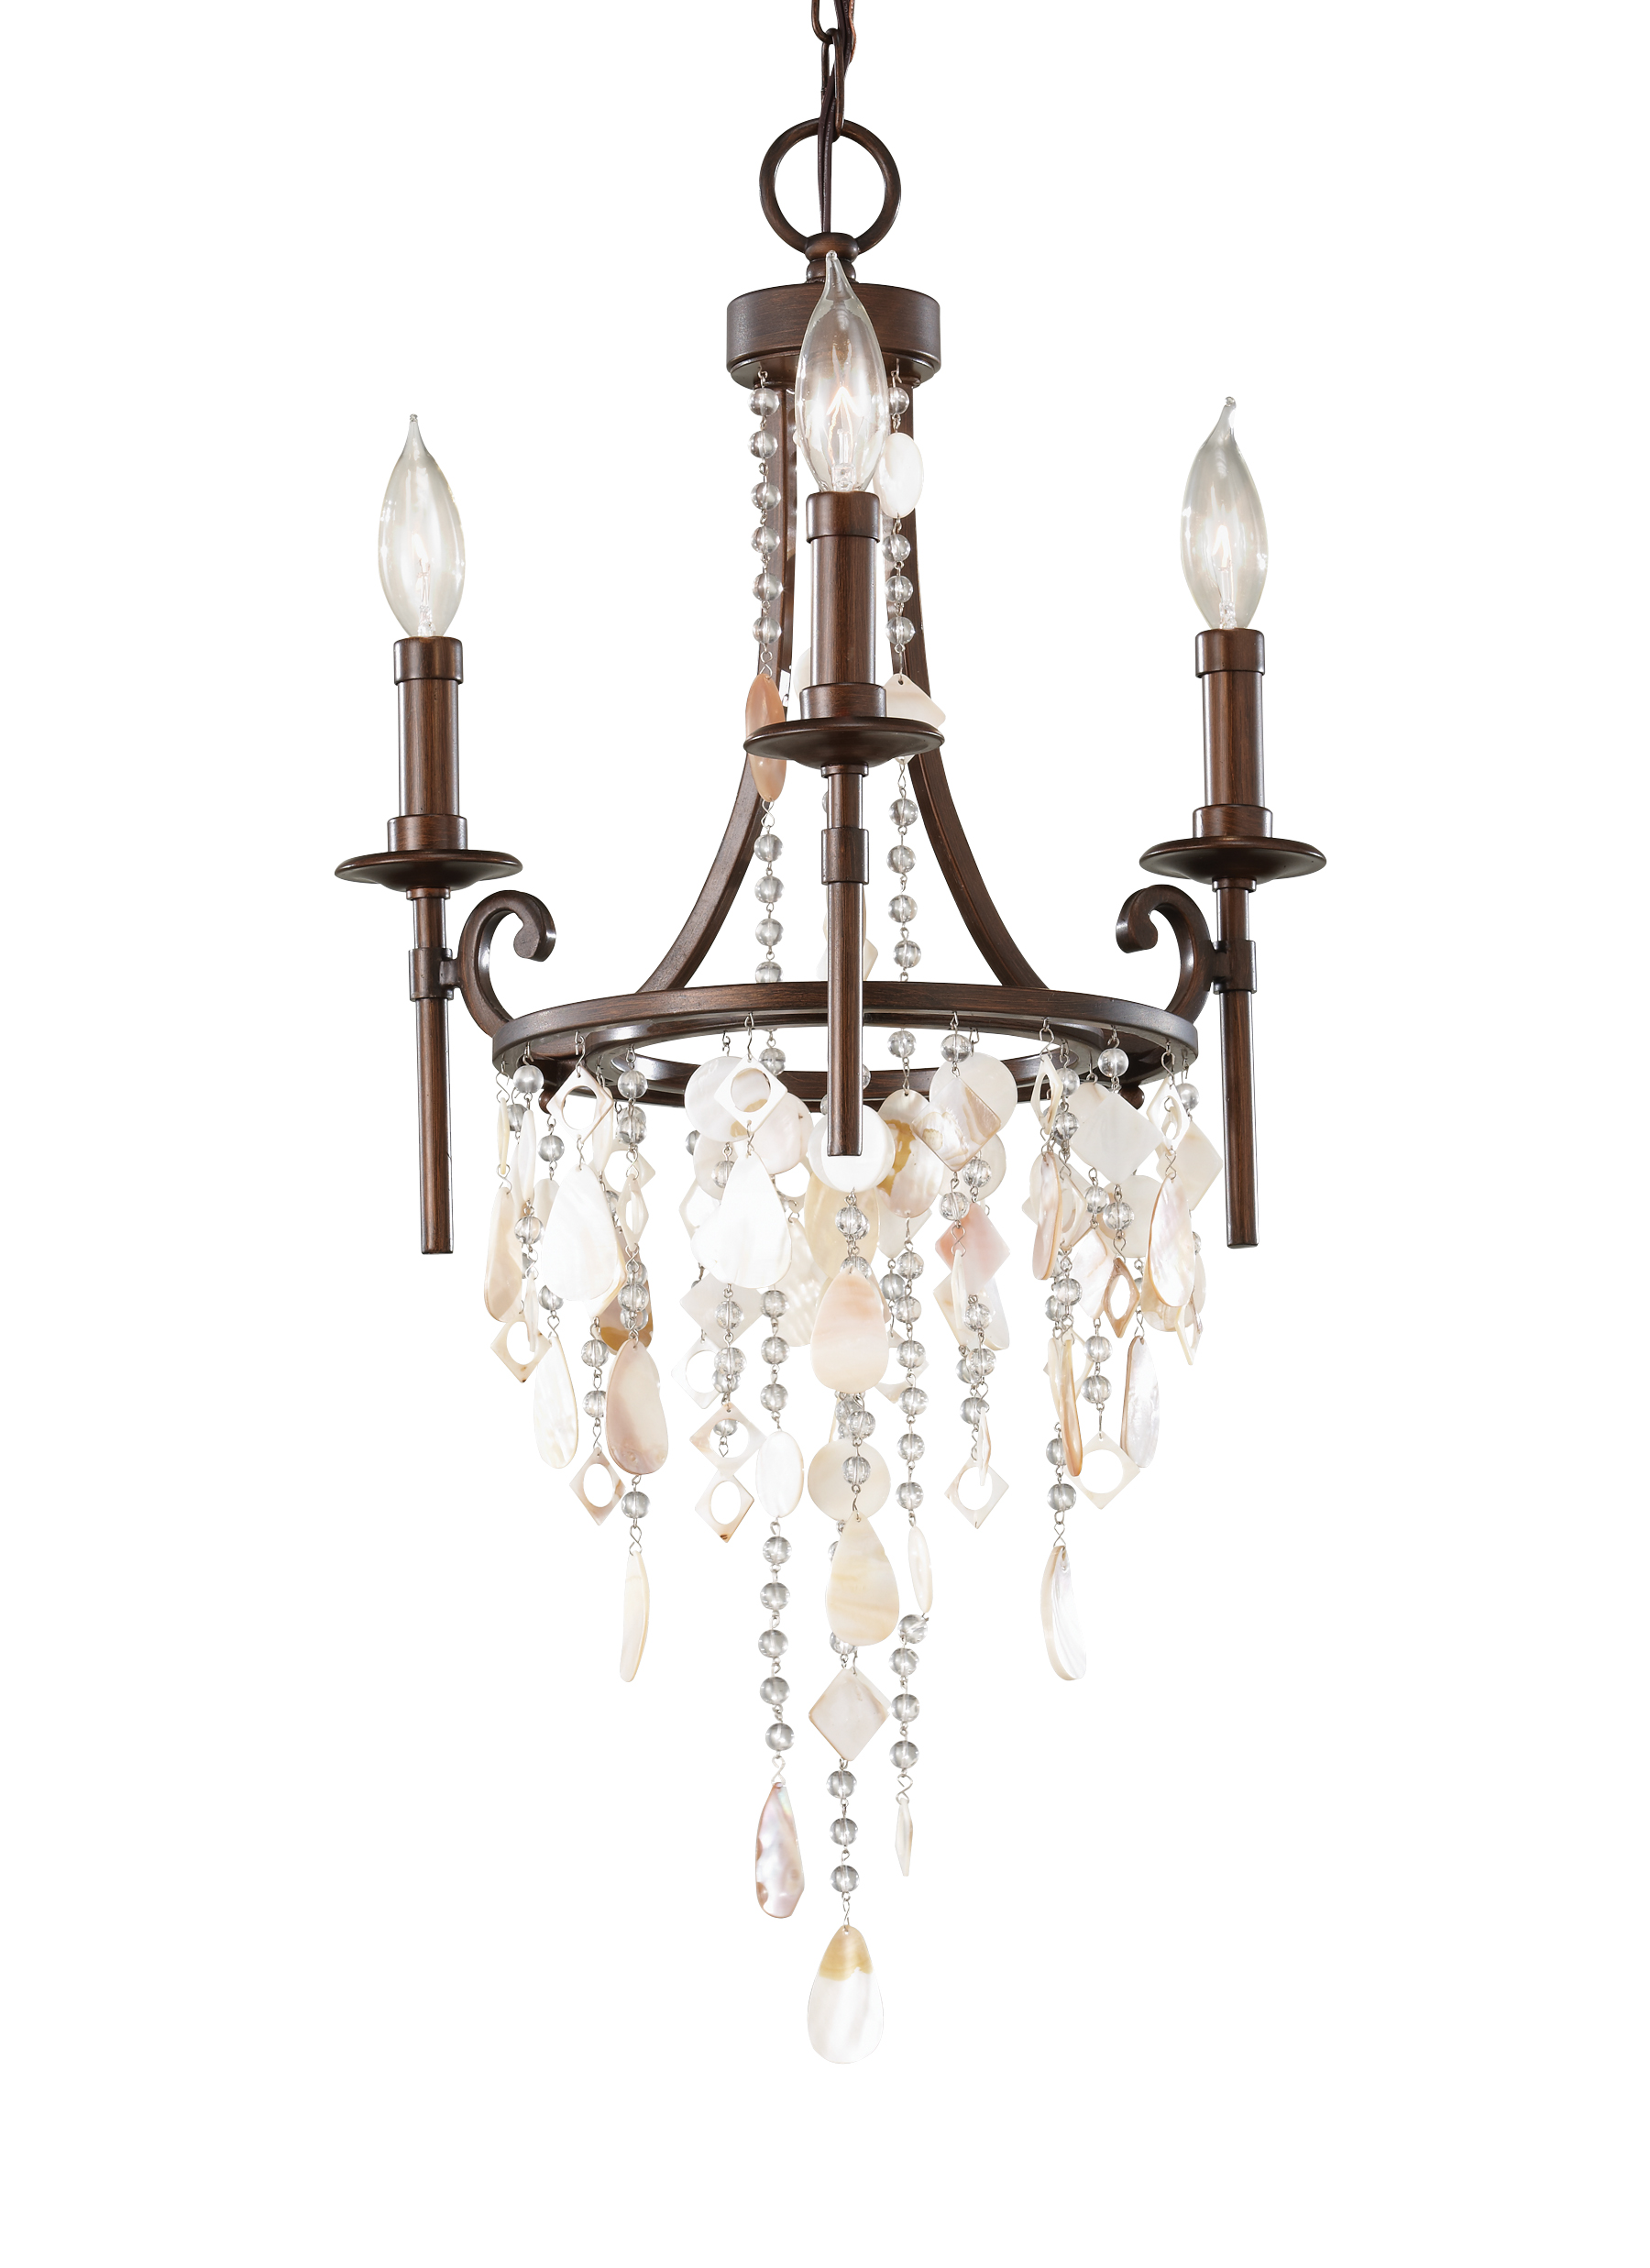 F26623htbz3 light mini chandelierheritage bronze loading zoom mozeypictures Image collections